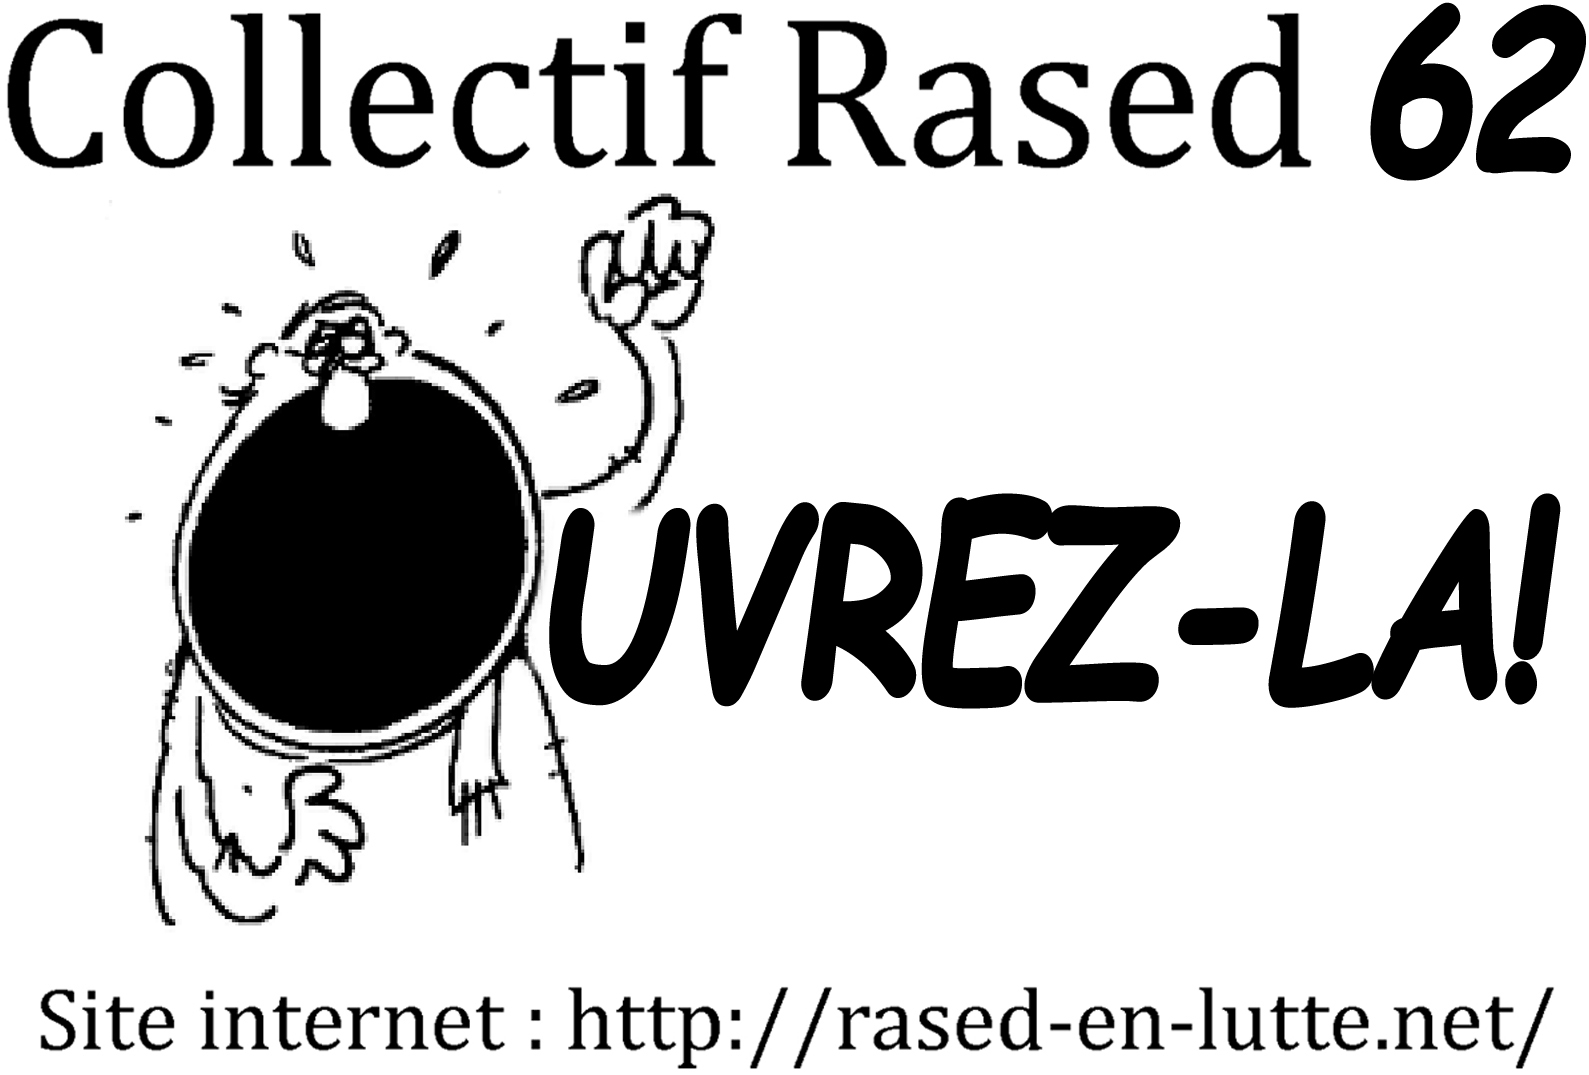 collectif-rased-62x-copie.jpg